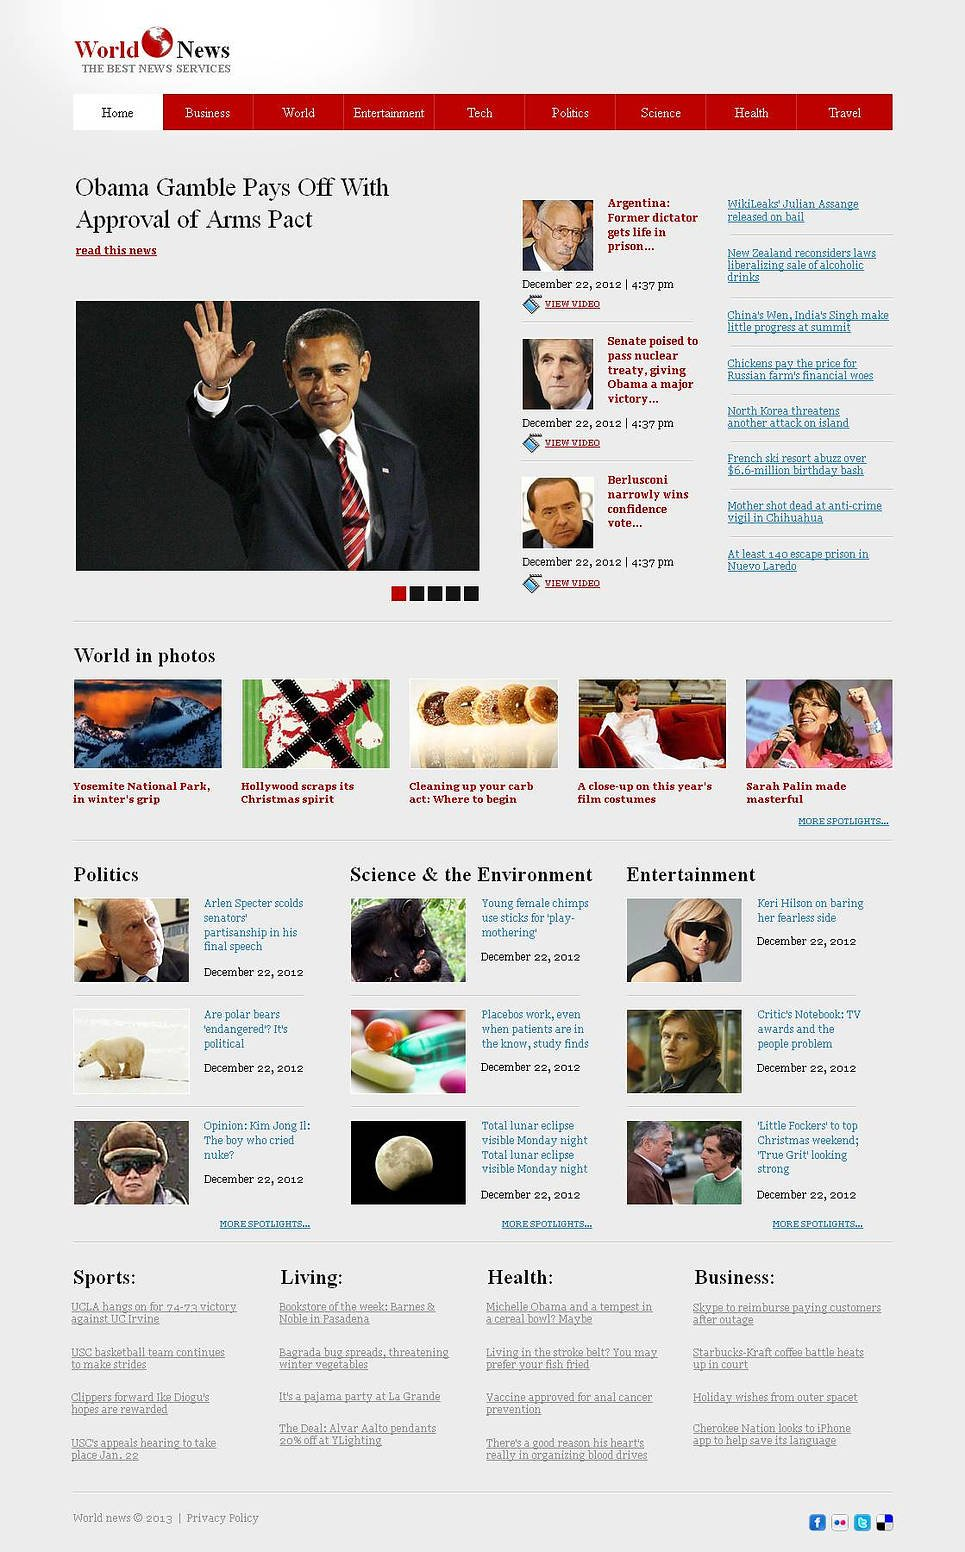 News Website Template Designed in a Newspaper Style - image